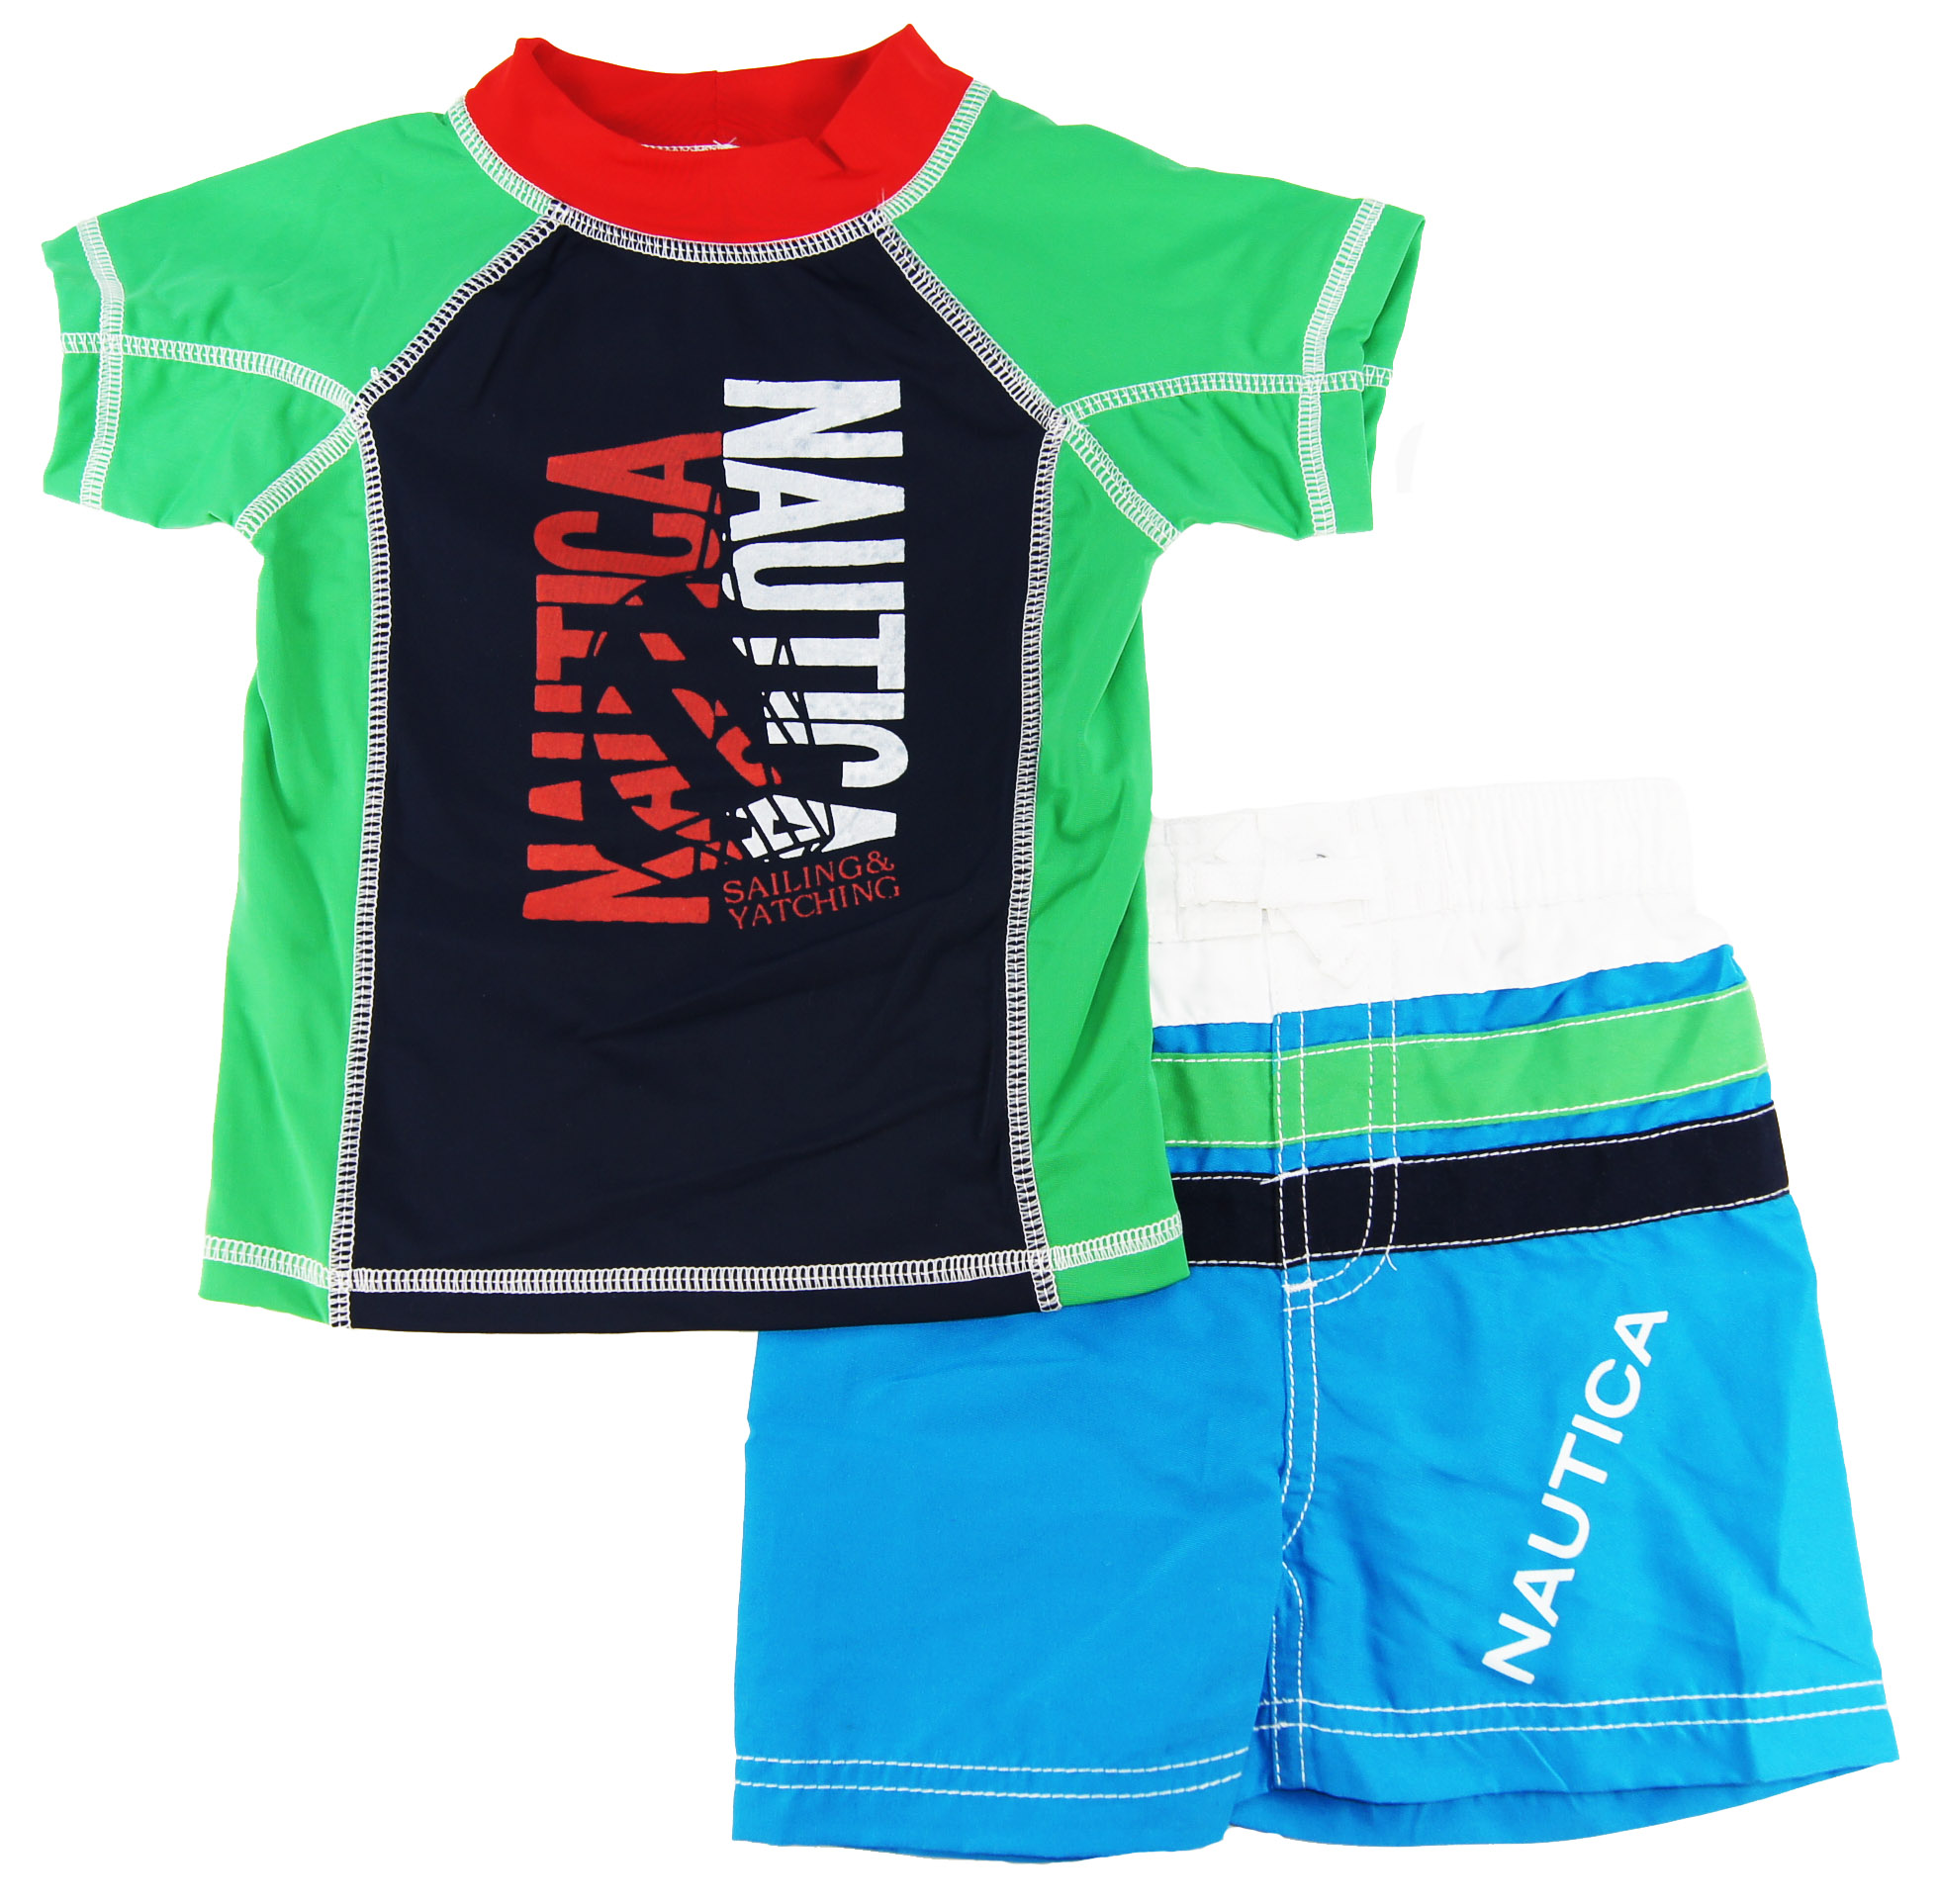 Nautica Infant Boys Green/Blue Print Rash Guard Swim Top/Shorts 2 Pc Set 121824M at Sears.com